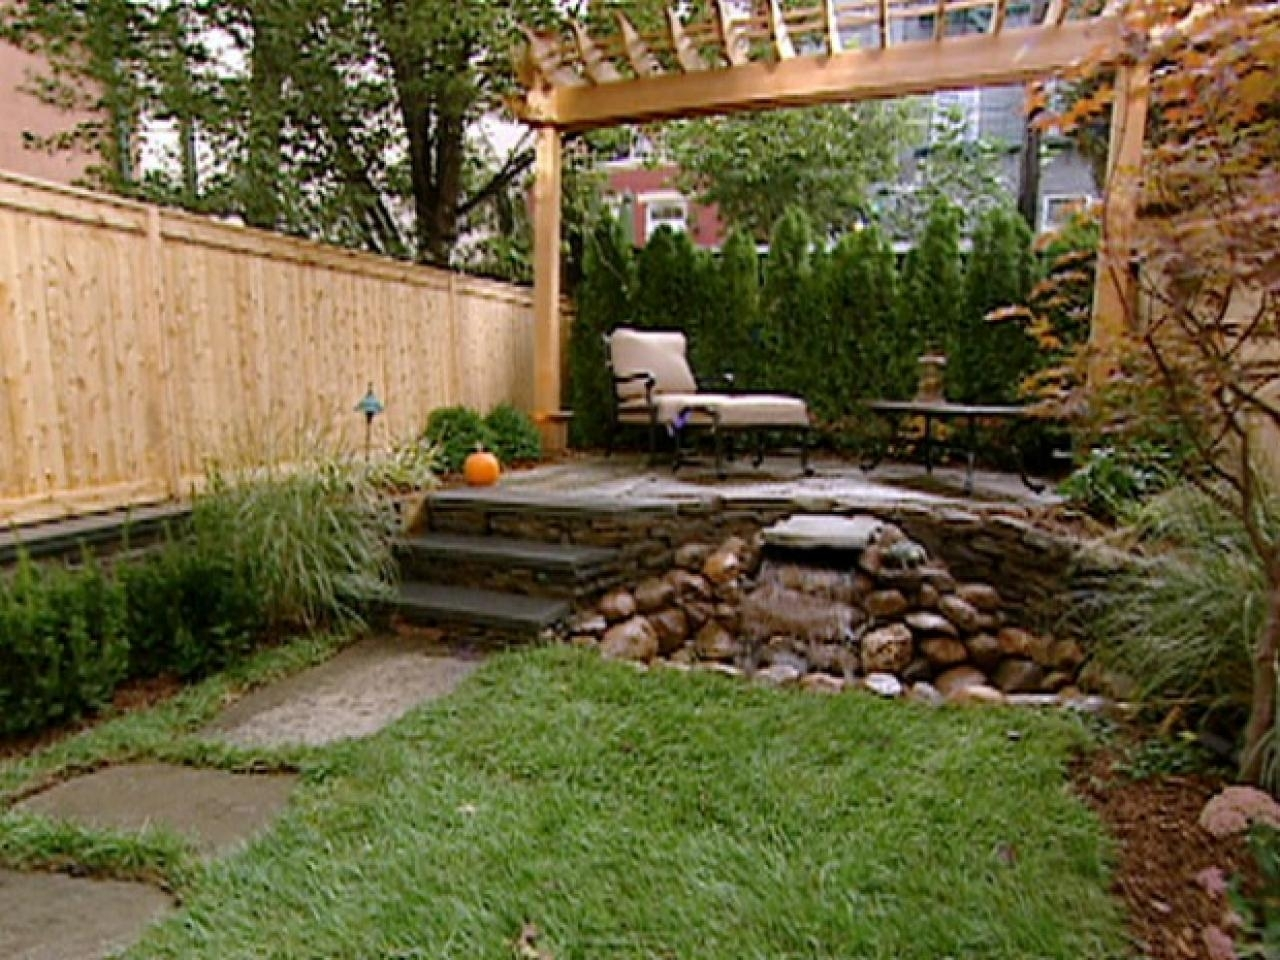 10 Attractive Landscaping Ideas For Small Yards %name 2020